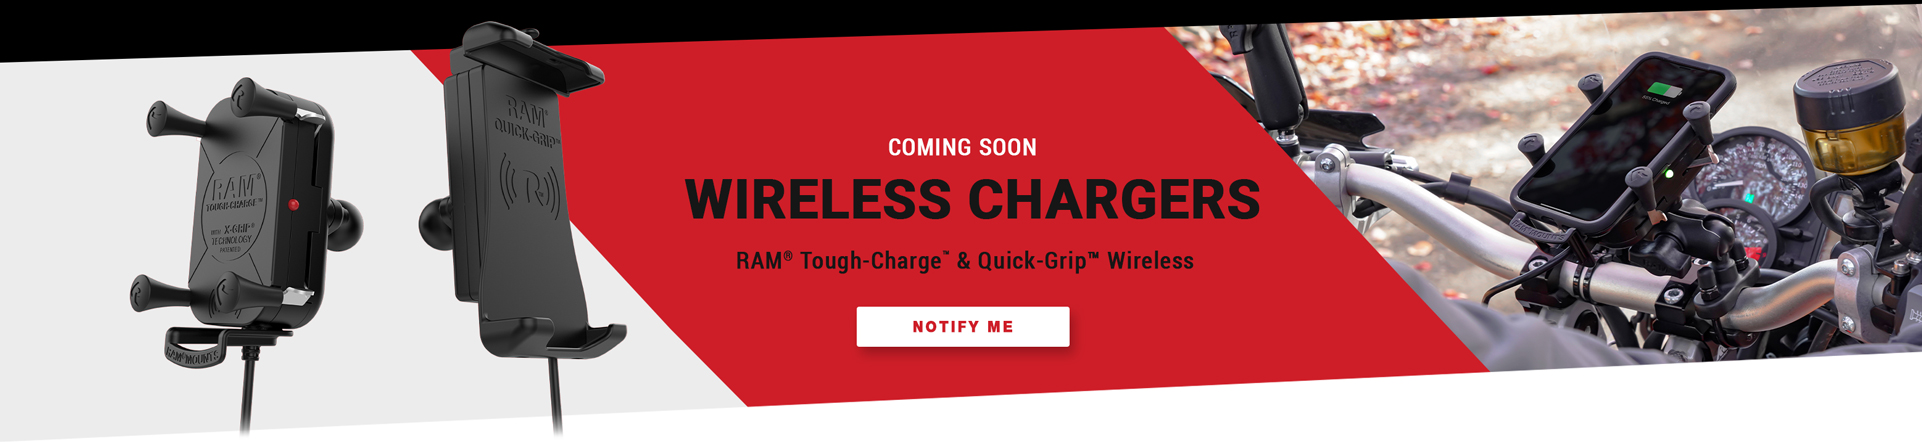 Wireless Chargers Coming Soon